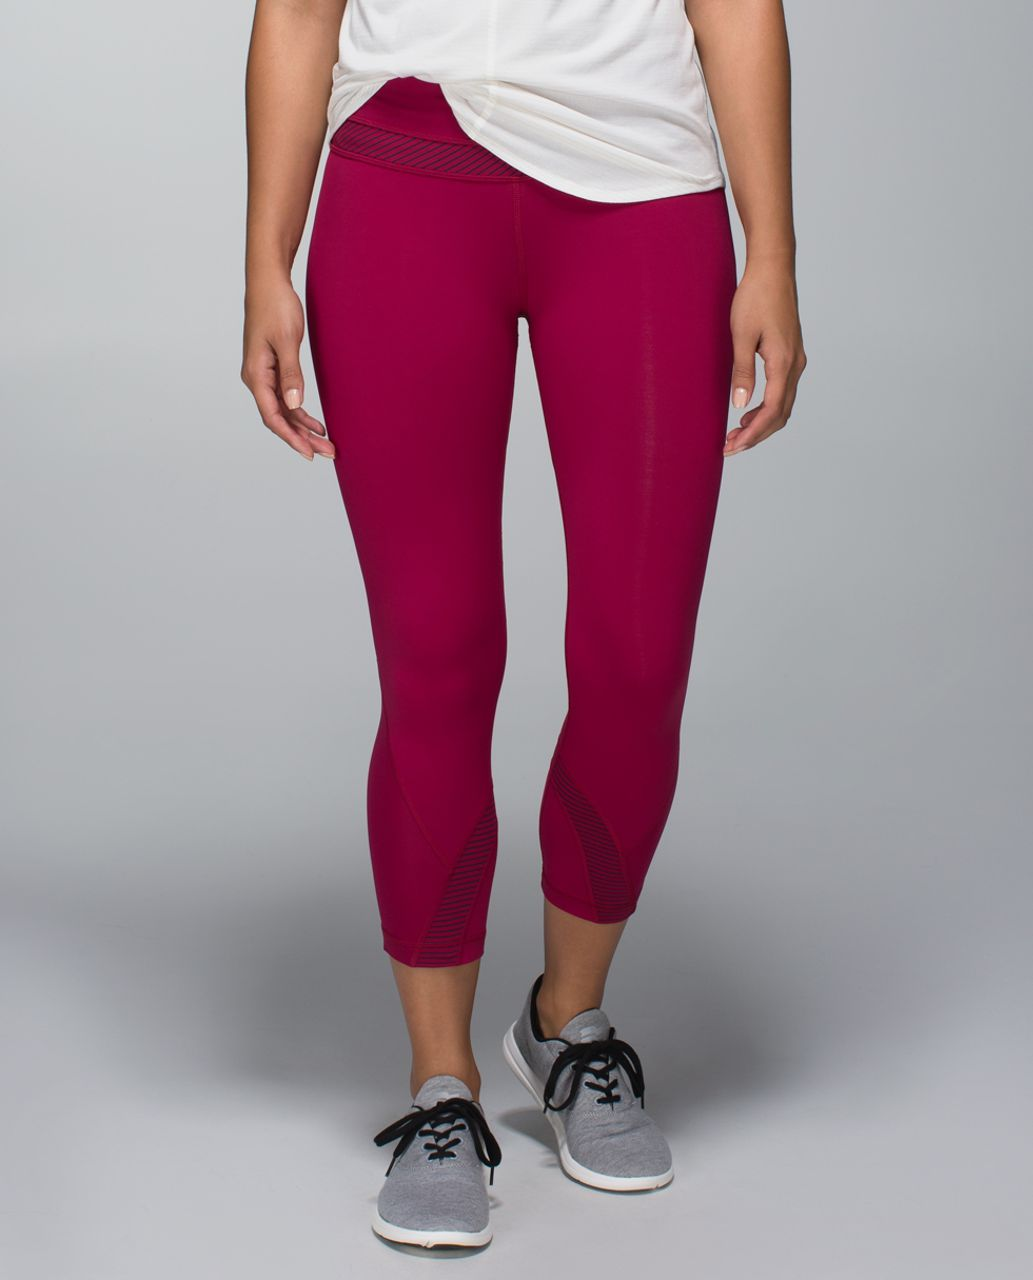 Lululemon Run:  Inspire Crop II - Bumble Berry / Hyper Stripe Bordeaux Drama Bumble Berry